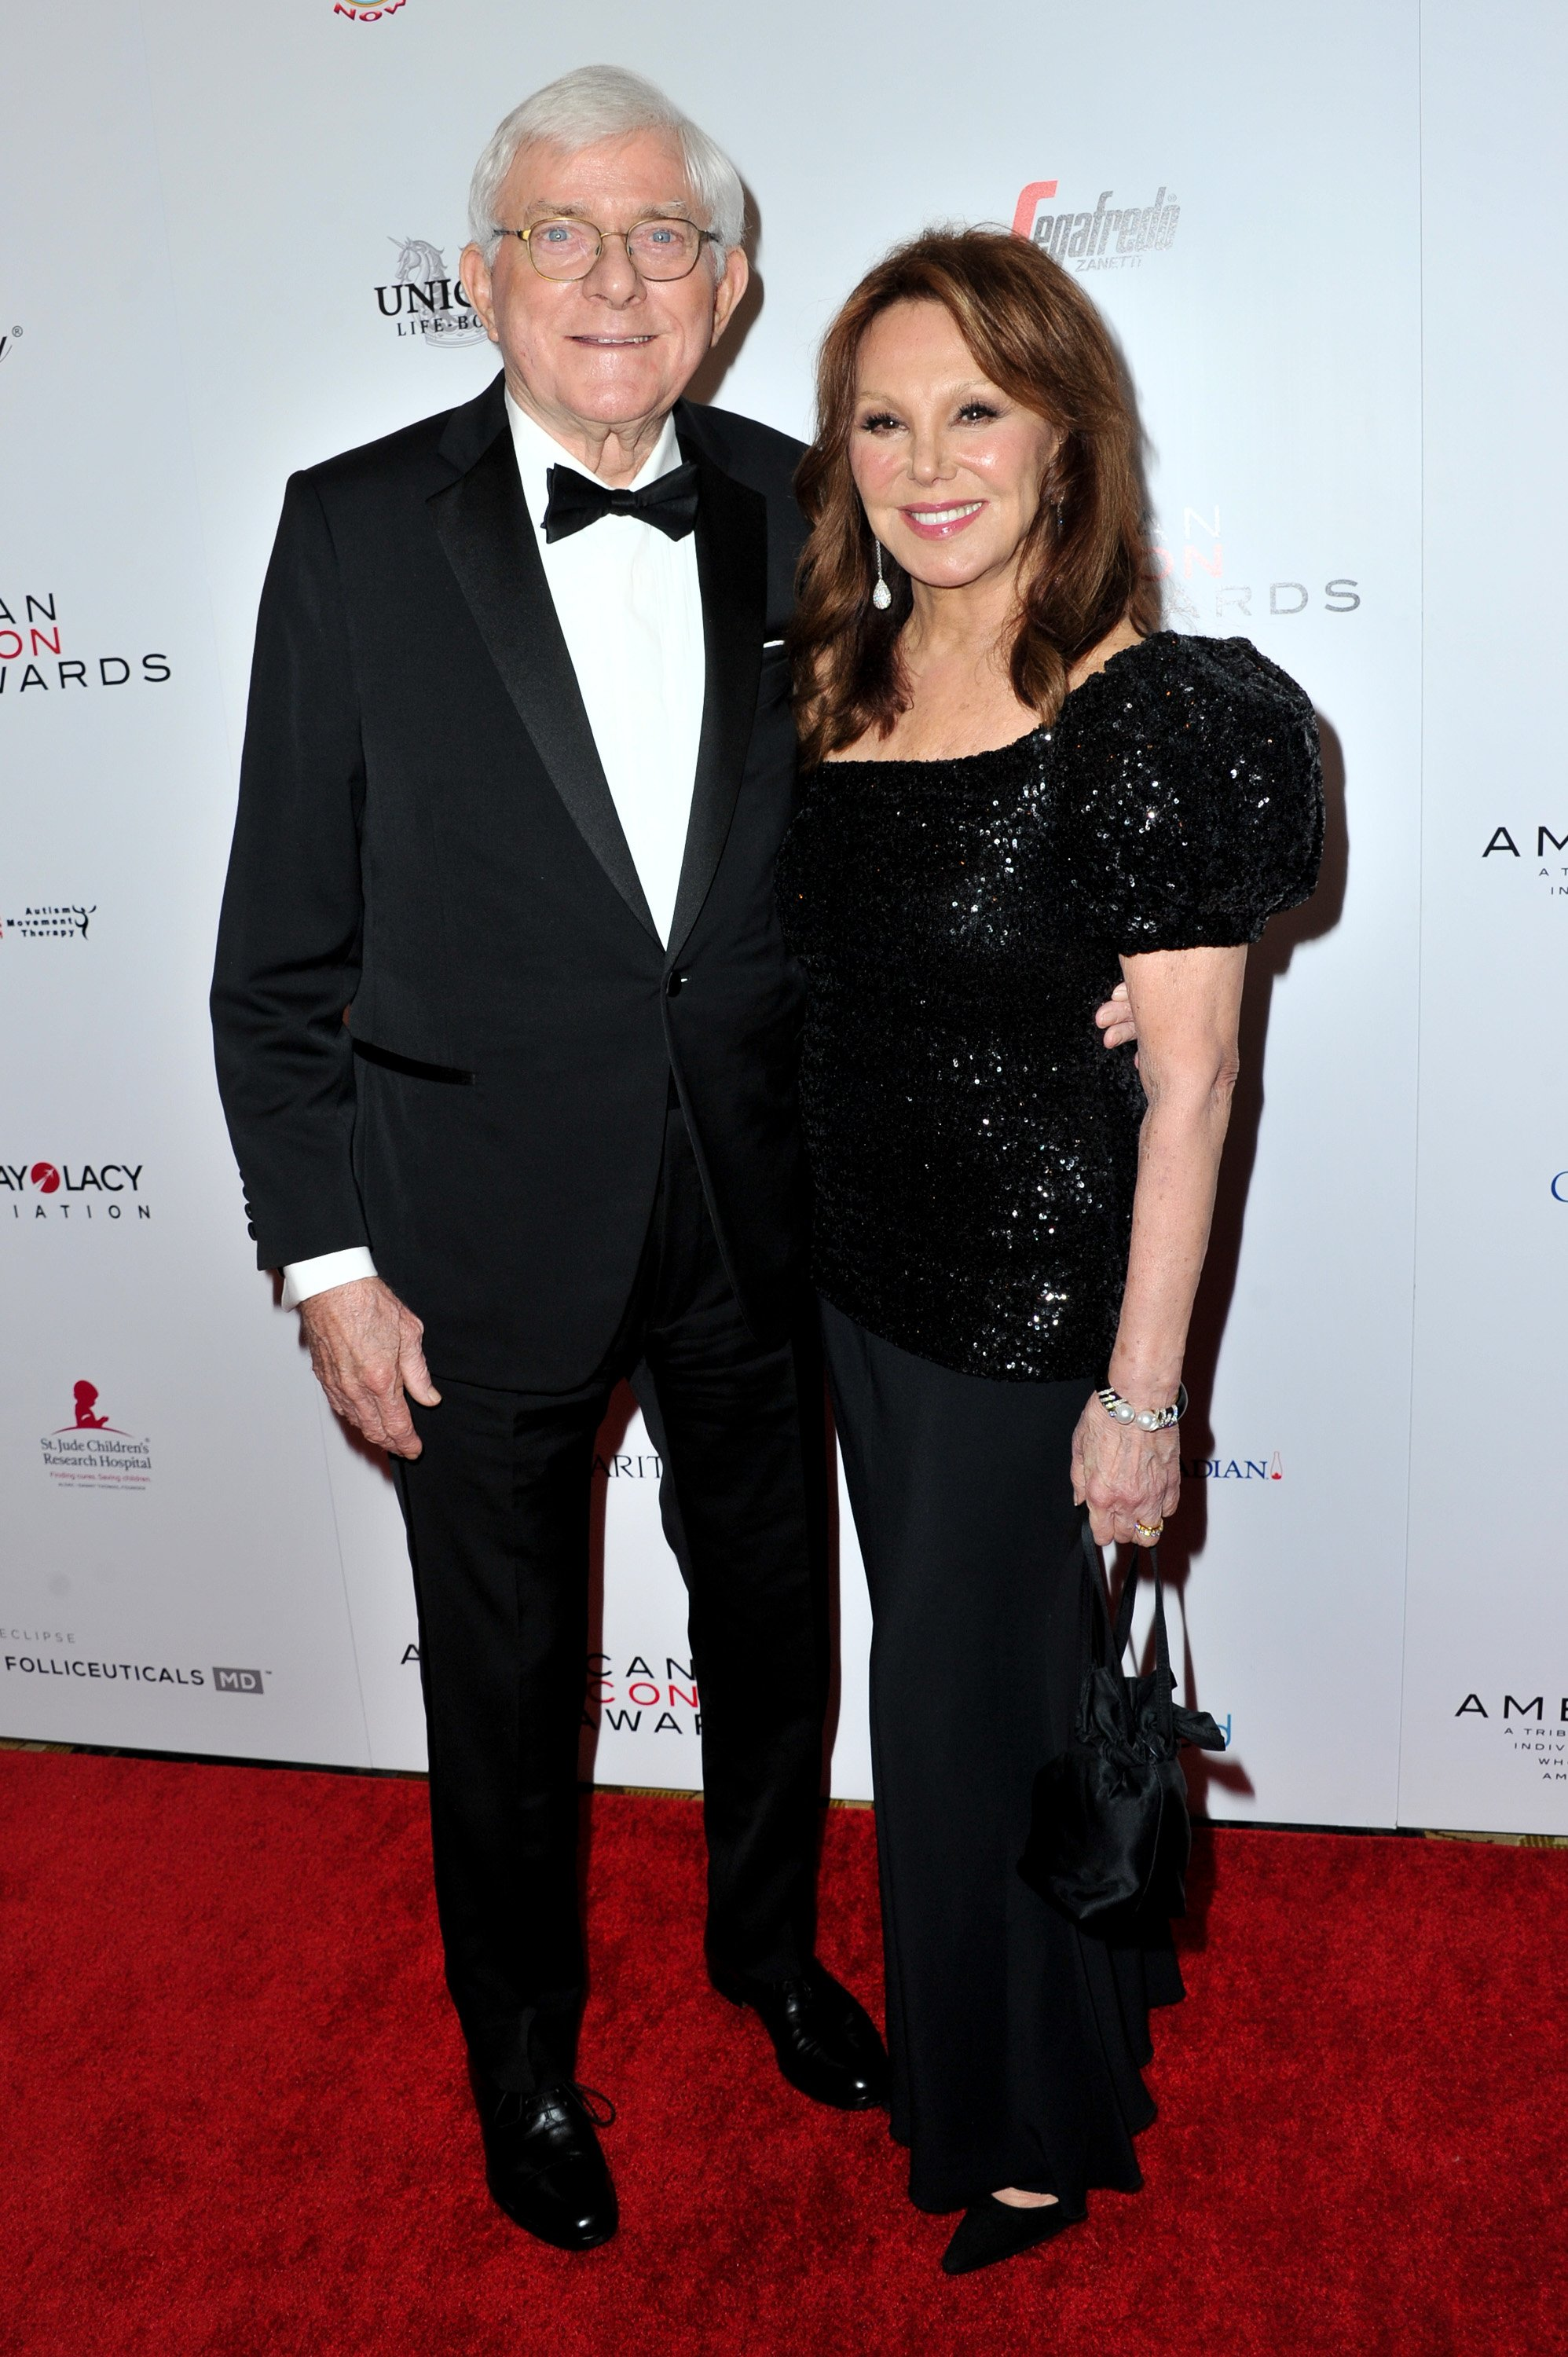 Phil Donahue and Marlo Thomas attend the American Icon Awards at the Beverly Wilshire Four Seasons Hotel on May 19, 2019  | Photo: GettyImages